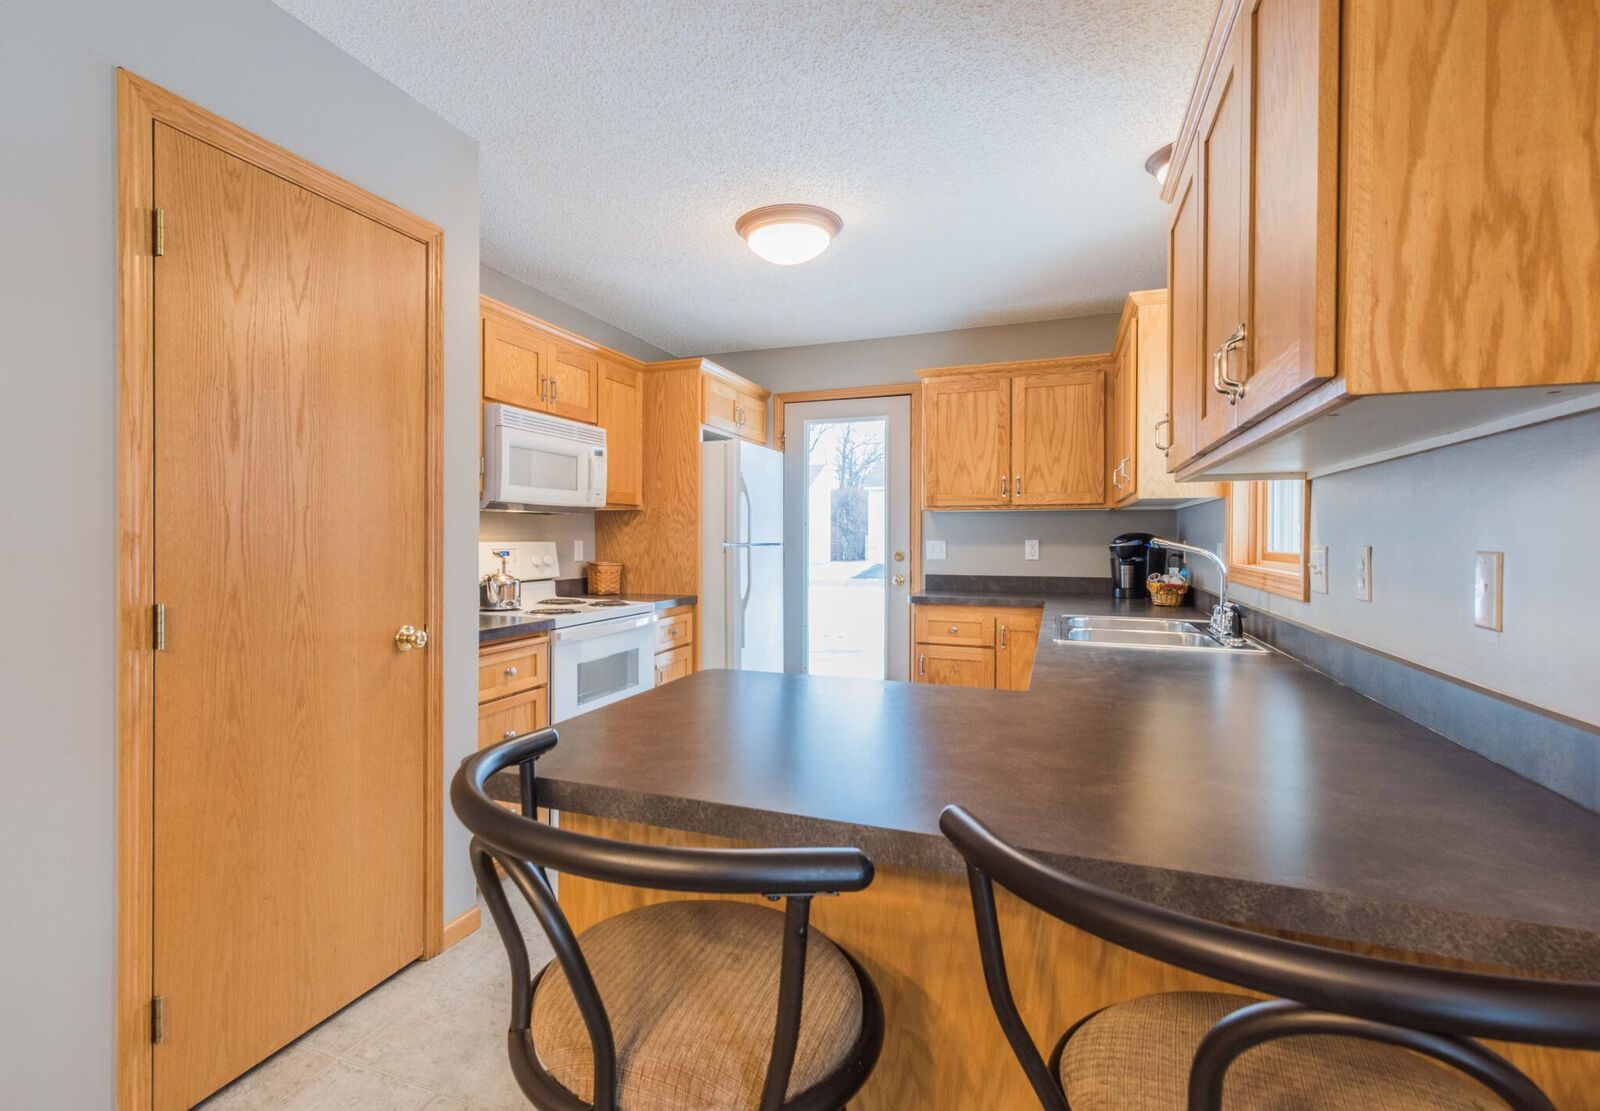 Open House: Big Lake 4 Bedroom Townhouse, Price Reduced